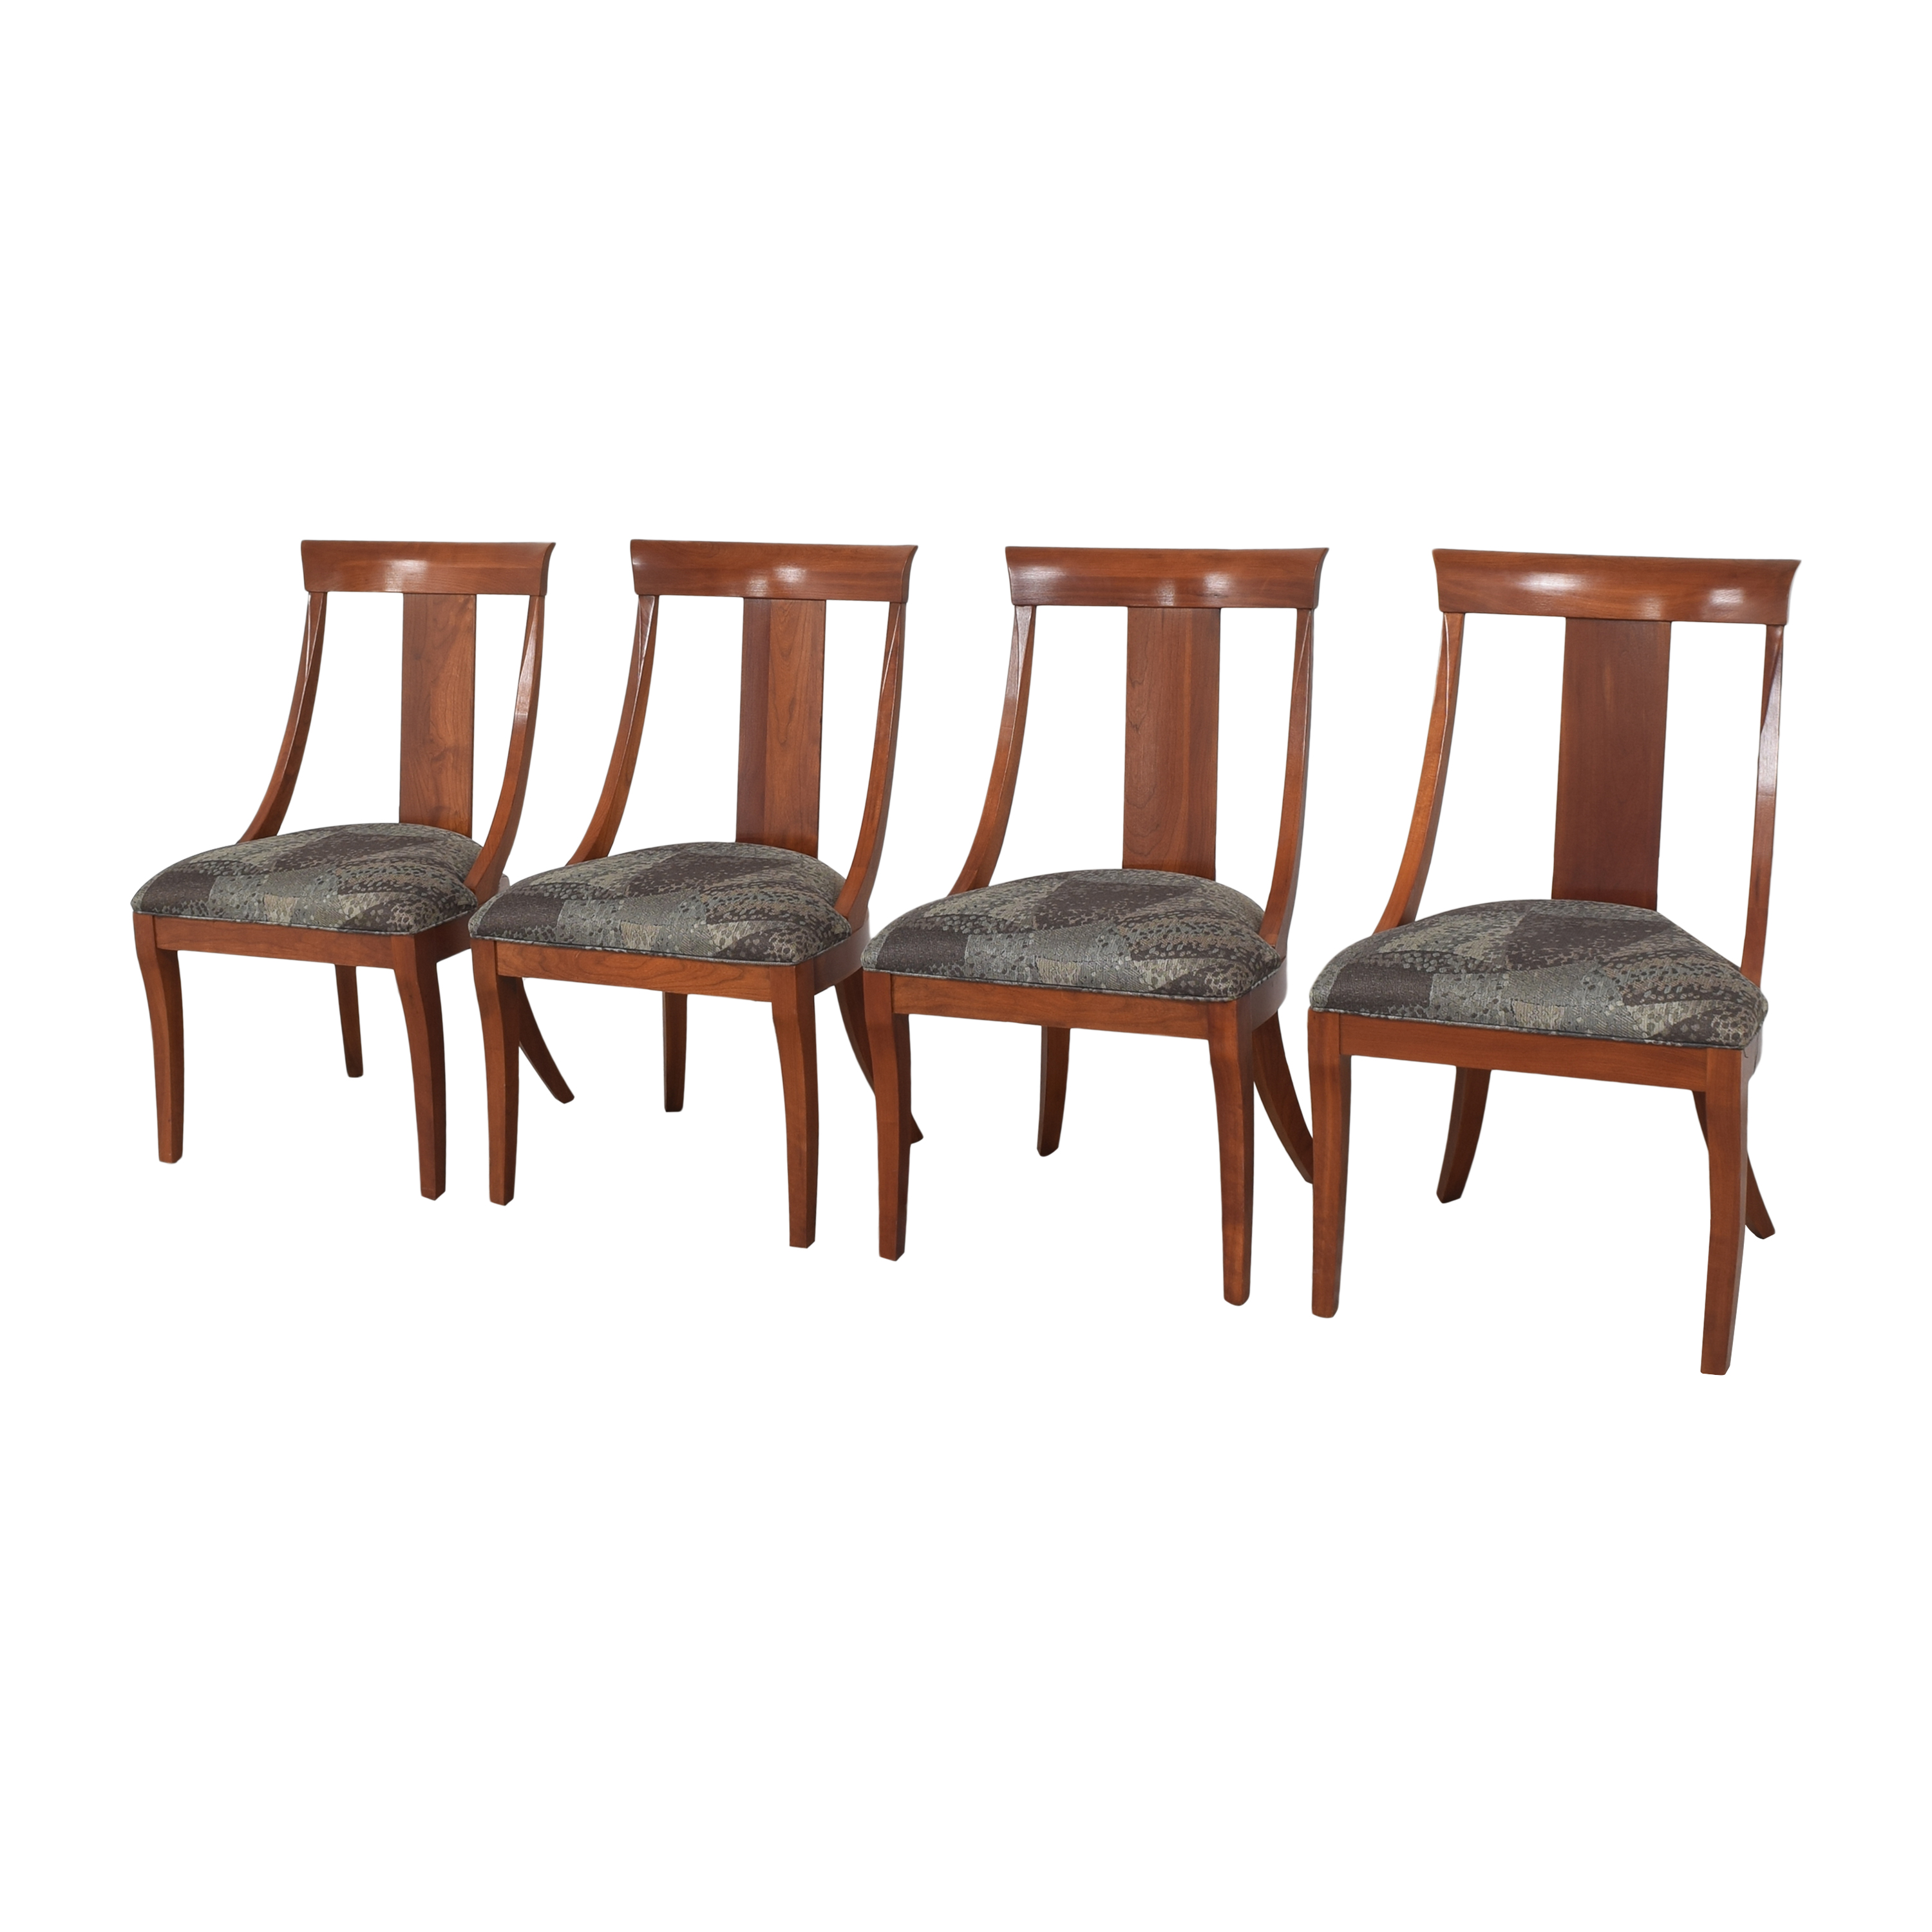 Ethan Allen Ethan Allen Medallion Dining Chairs for sale